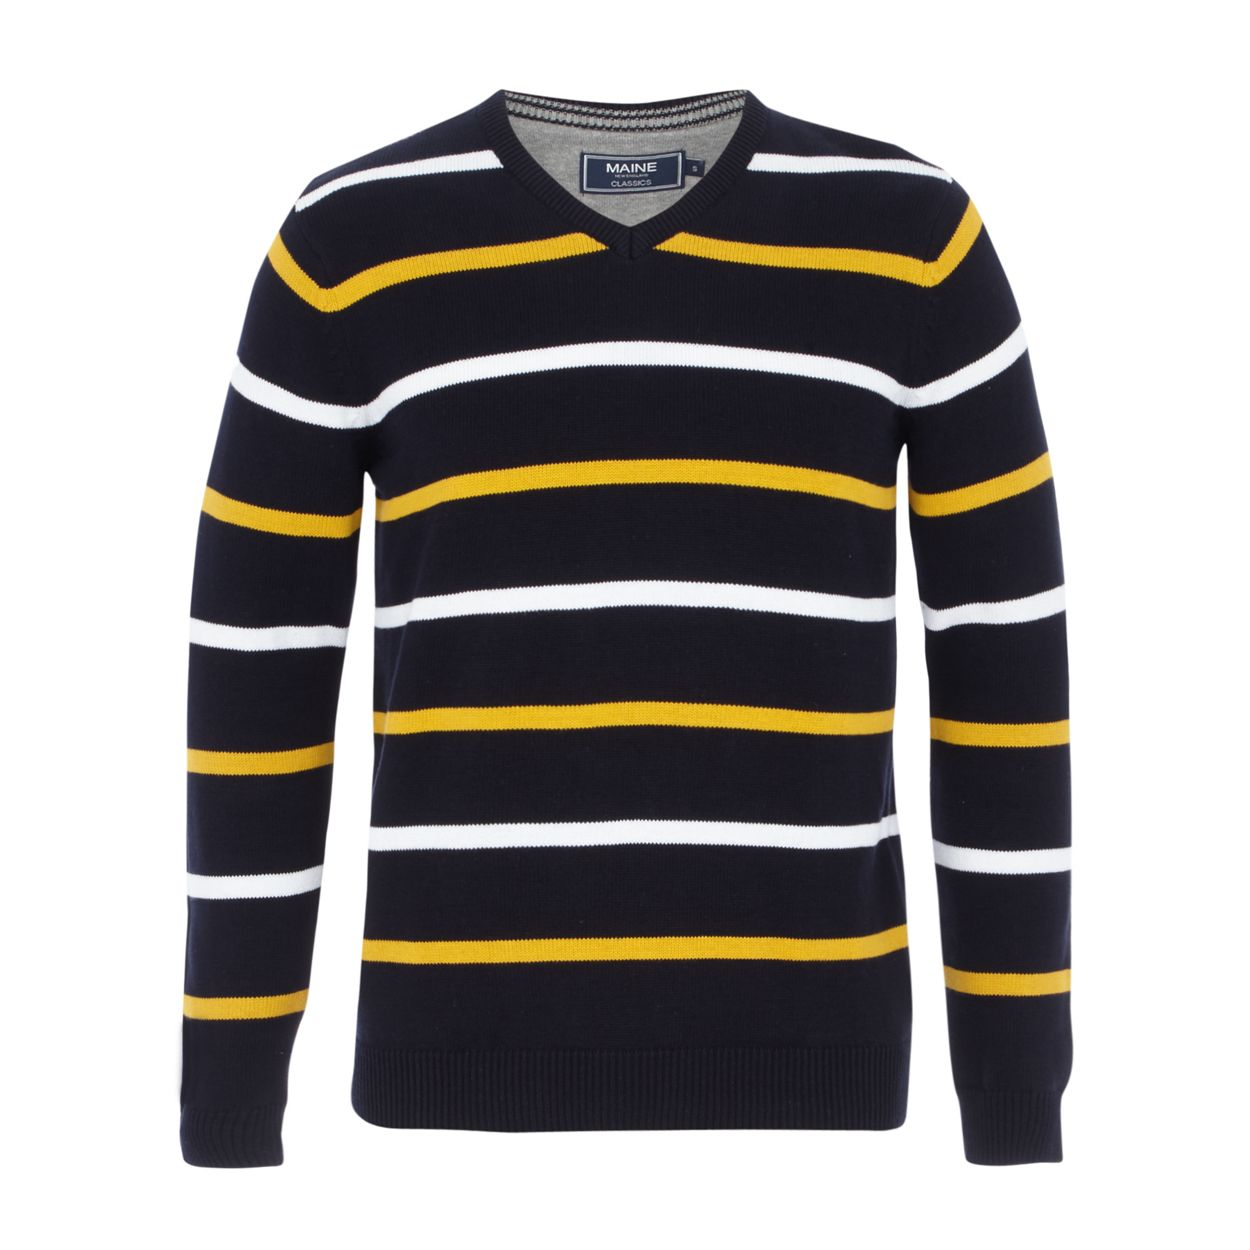 Maine New England Navy and yellow striped V-neck jumper